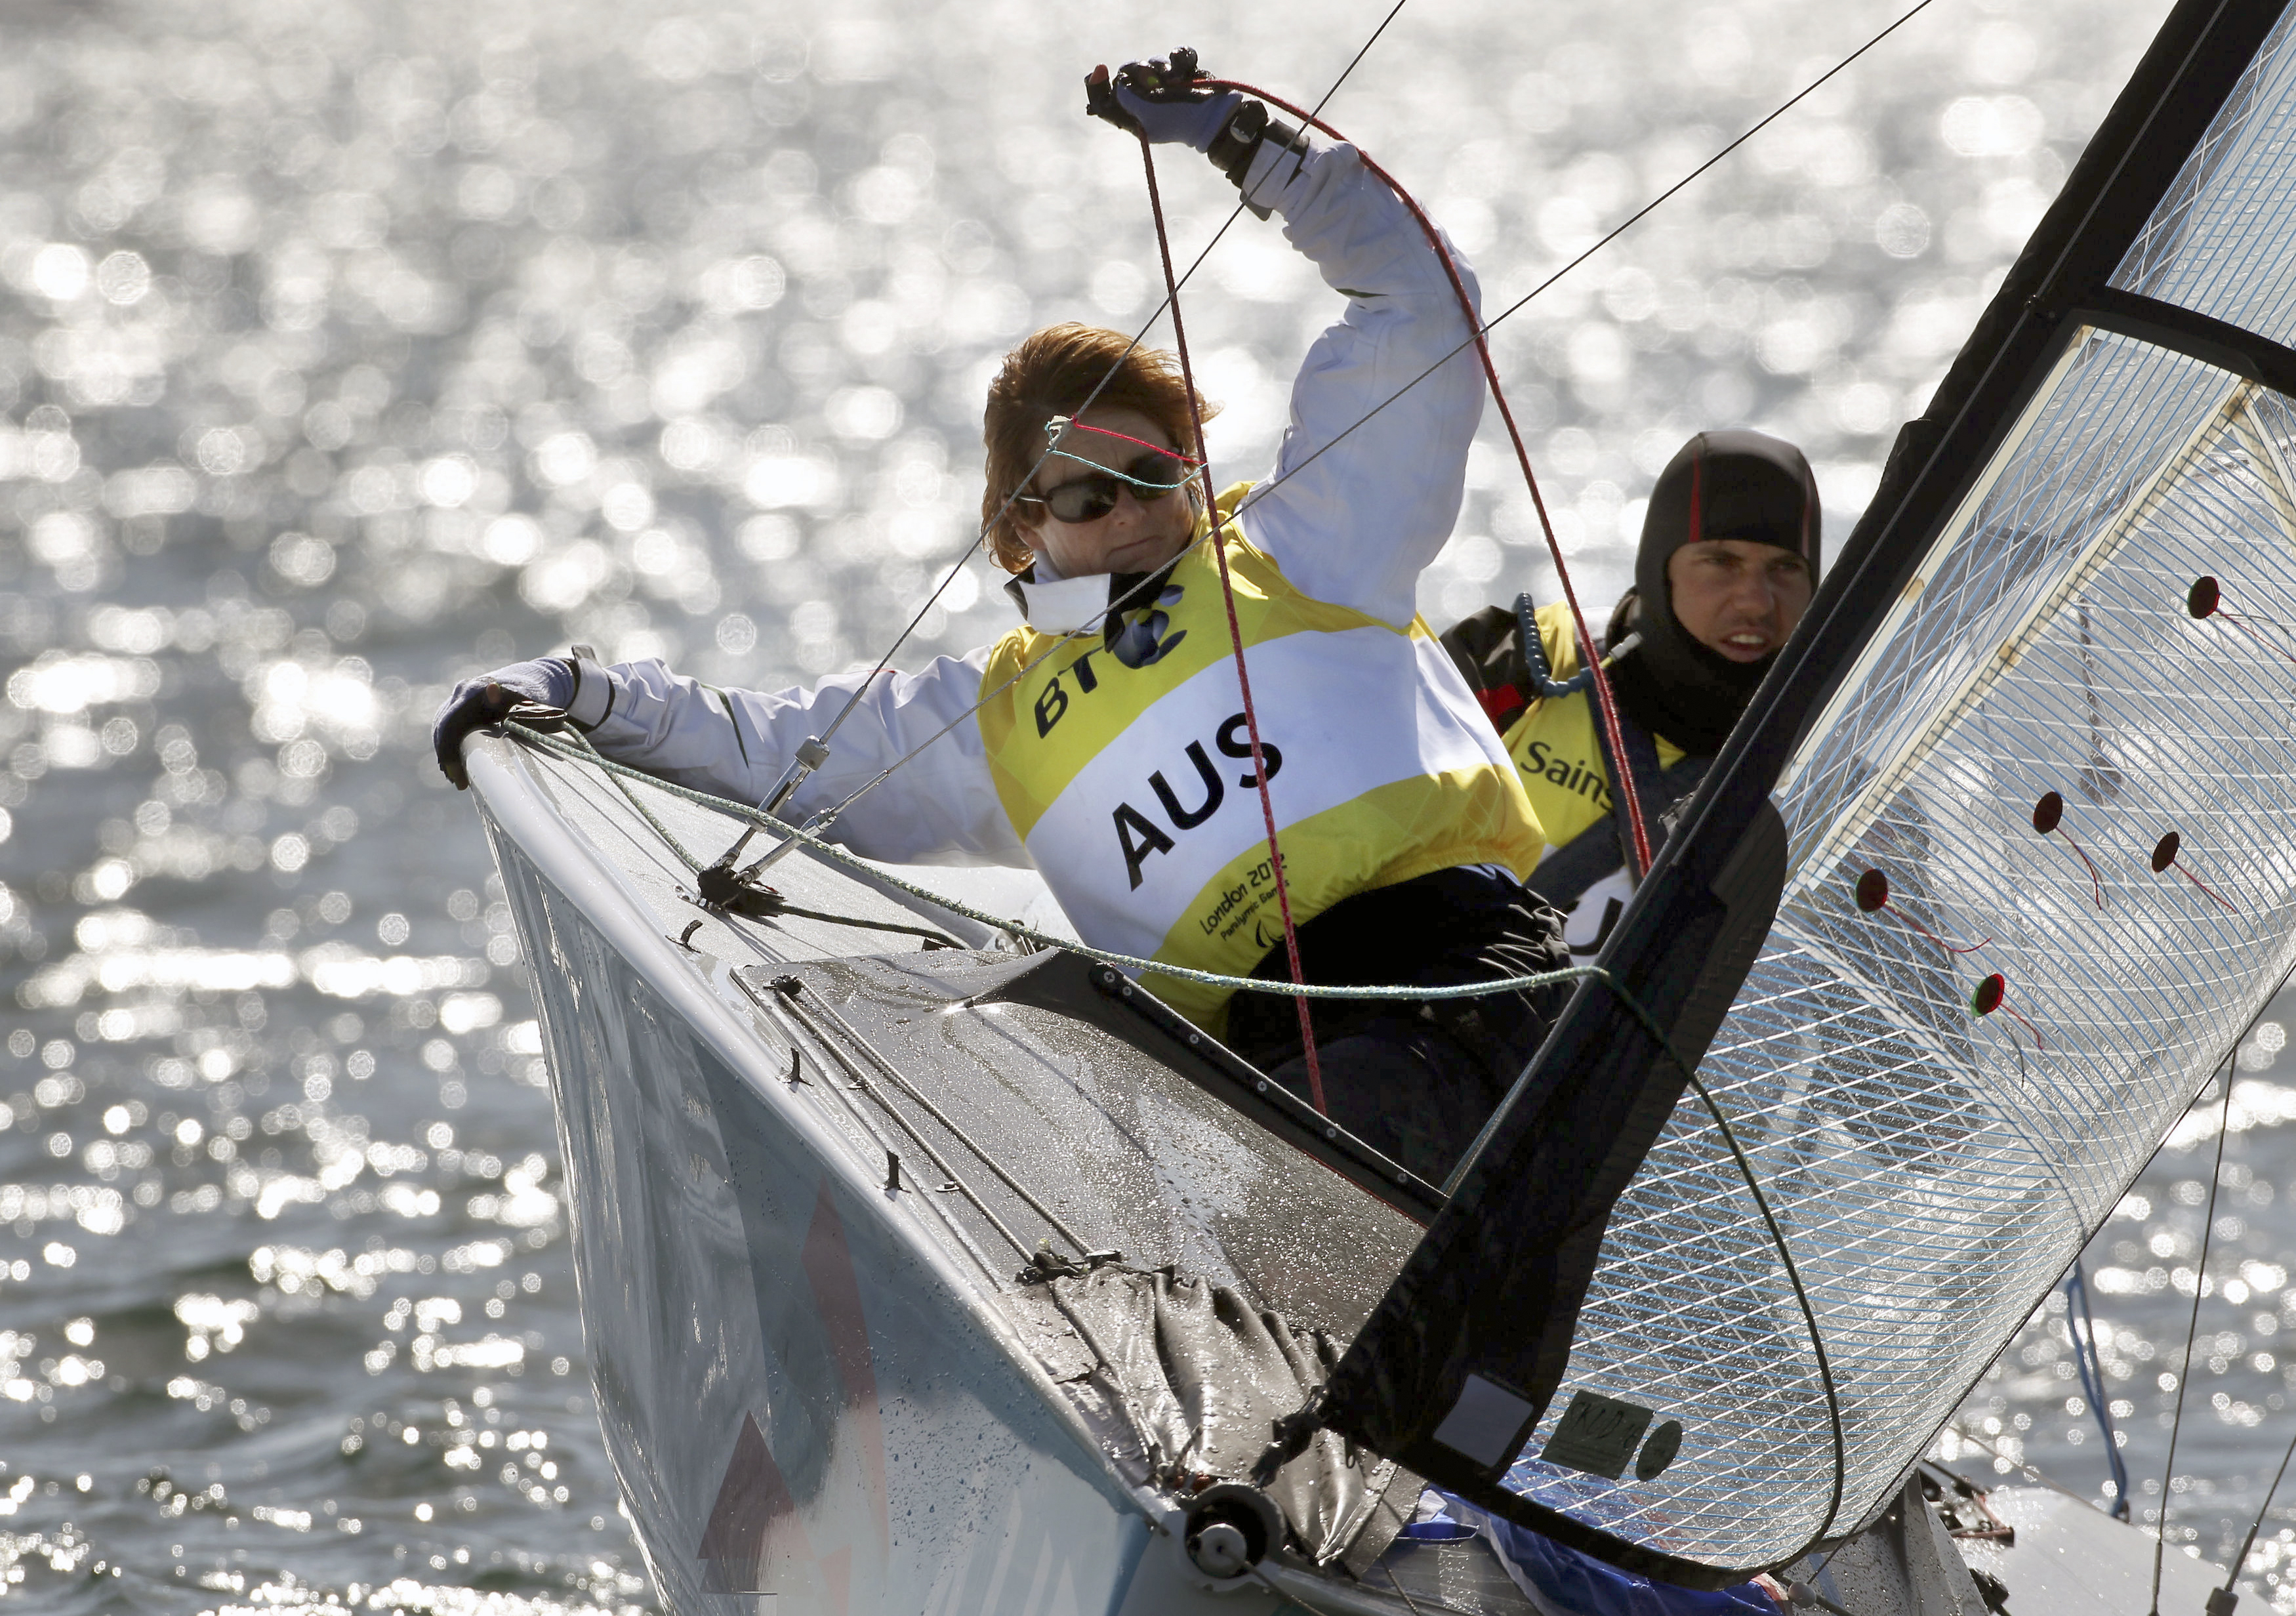 Australian Paralympic sailor and basketball player Liesl Tesch, left, sails with teammate Daniel Fitzgibbon during the 2012 Olympics in Weymouth, England, on Sept. 5, 2012